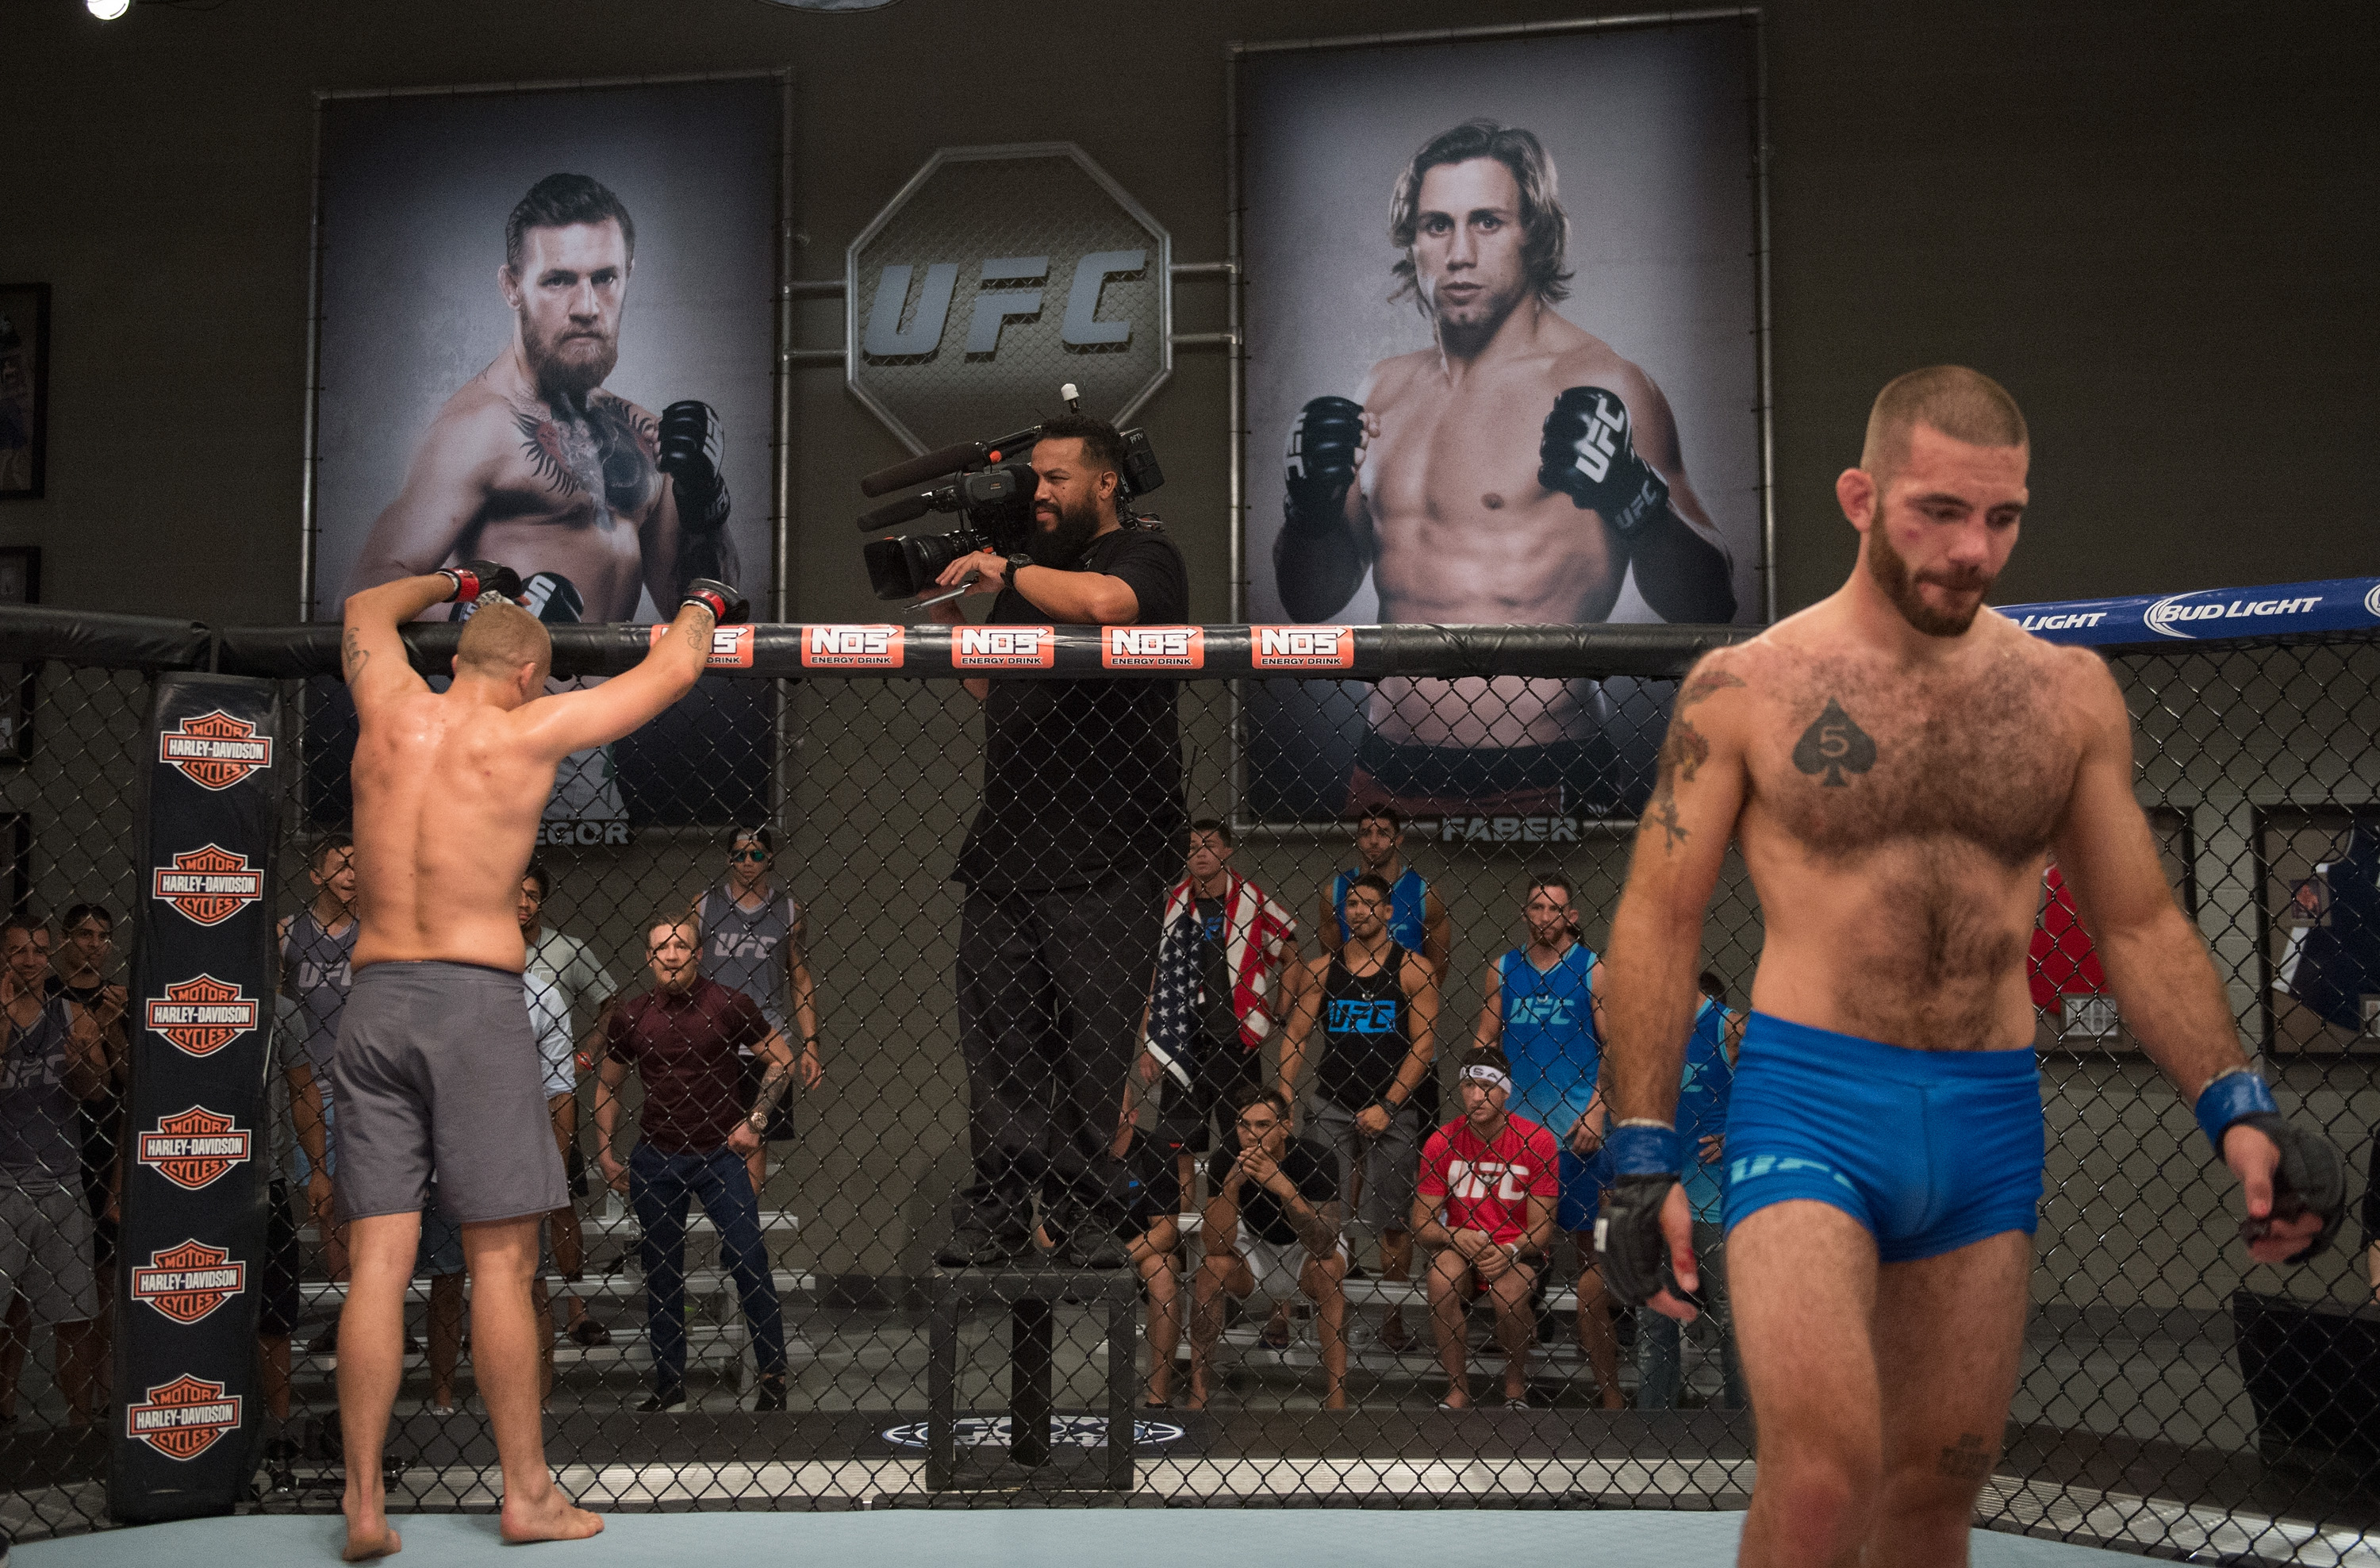 (L-R) Marcin Wrzosek raises his hands after his fight against Tom Gallicchio during the filming of The Ultimate Fighter: Team McGregor vs Team Faber at the UFC TUF Gym on July 30, 2015 in Las Vegas, Nevada. (Brandon Magnus/Zuffa LLC)